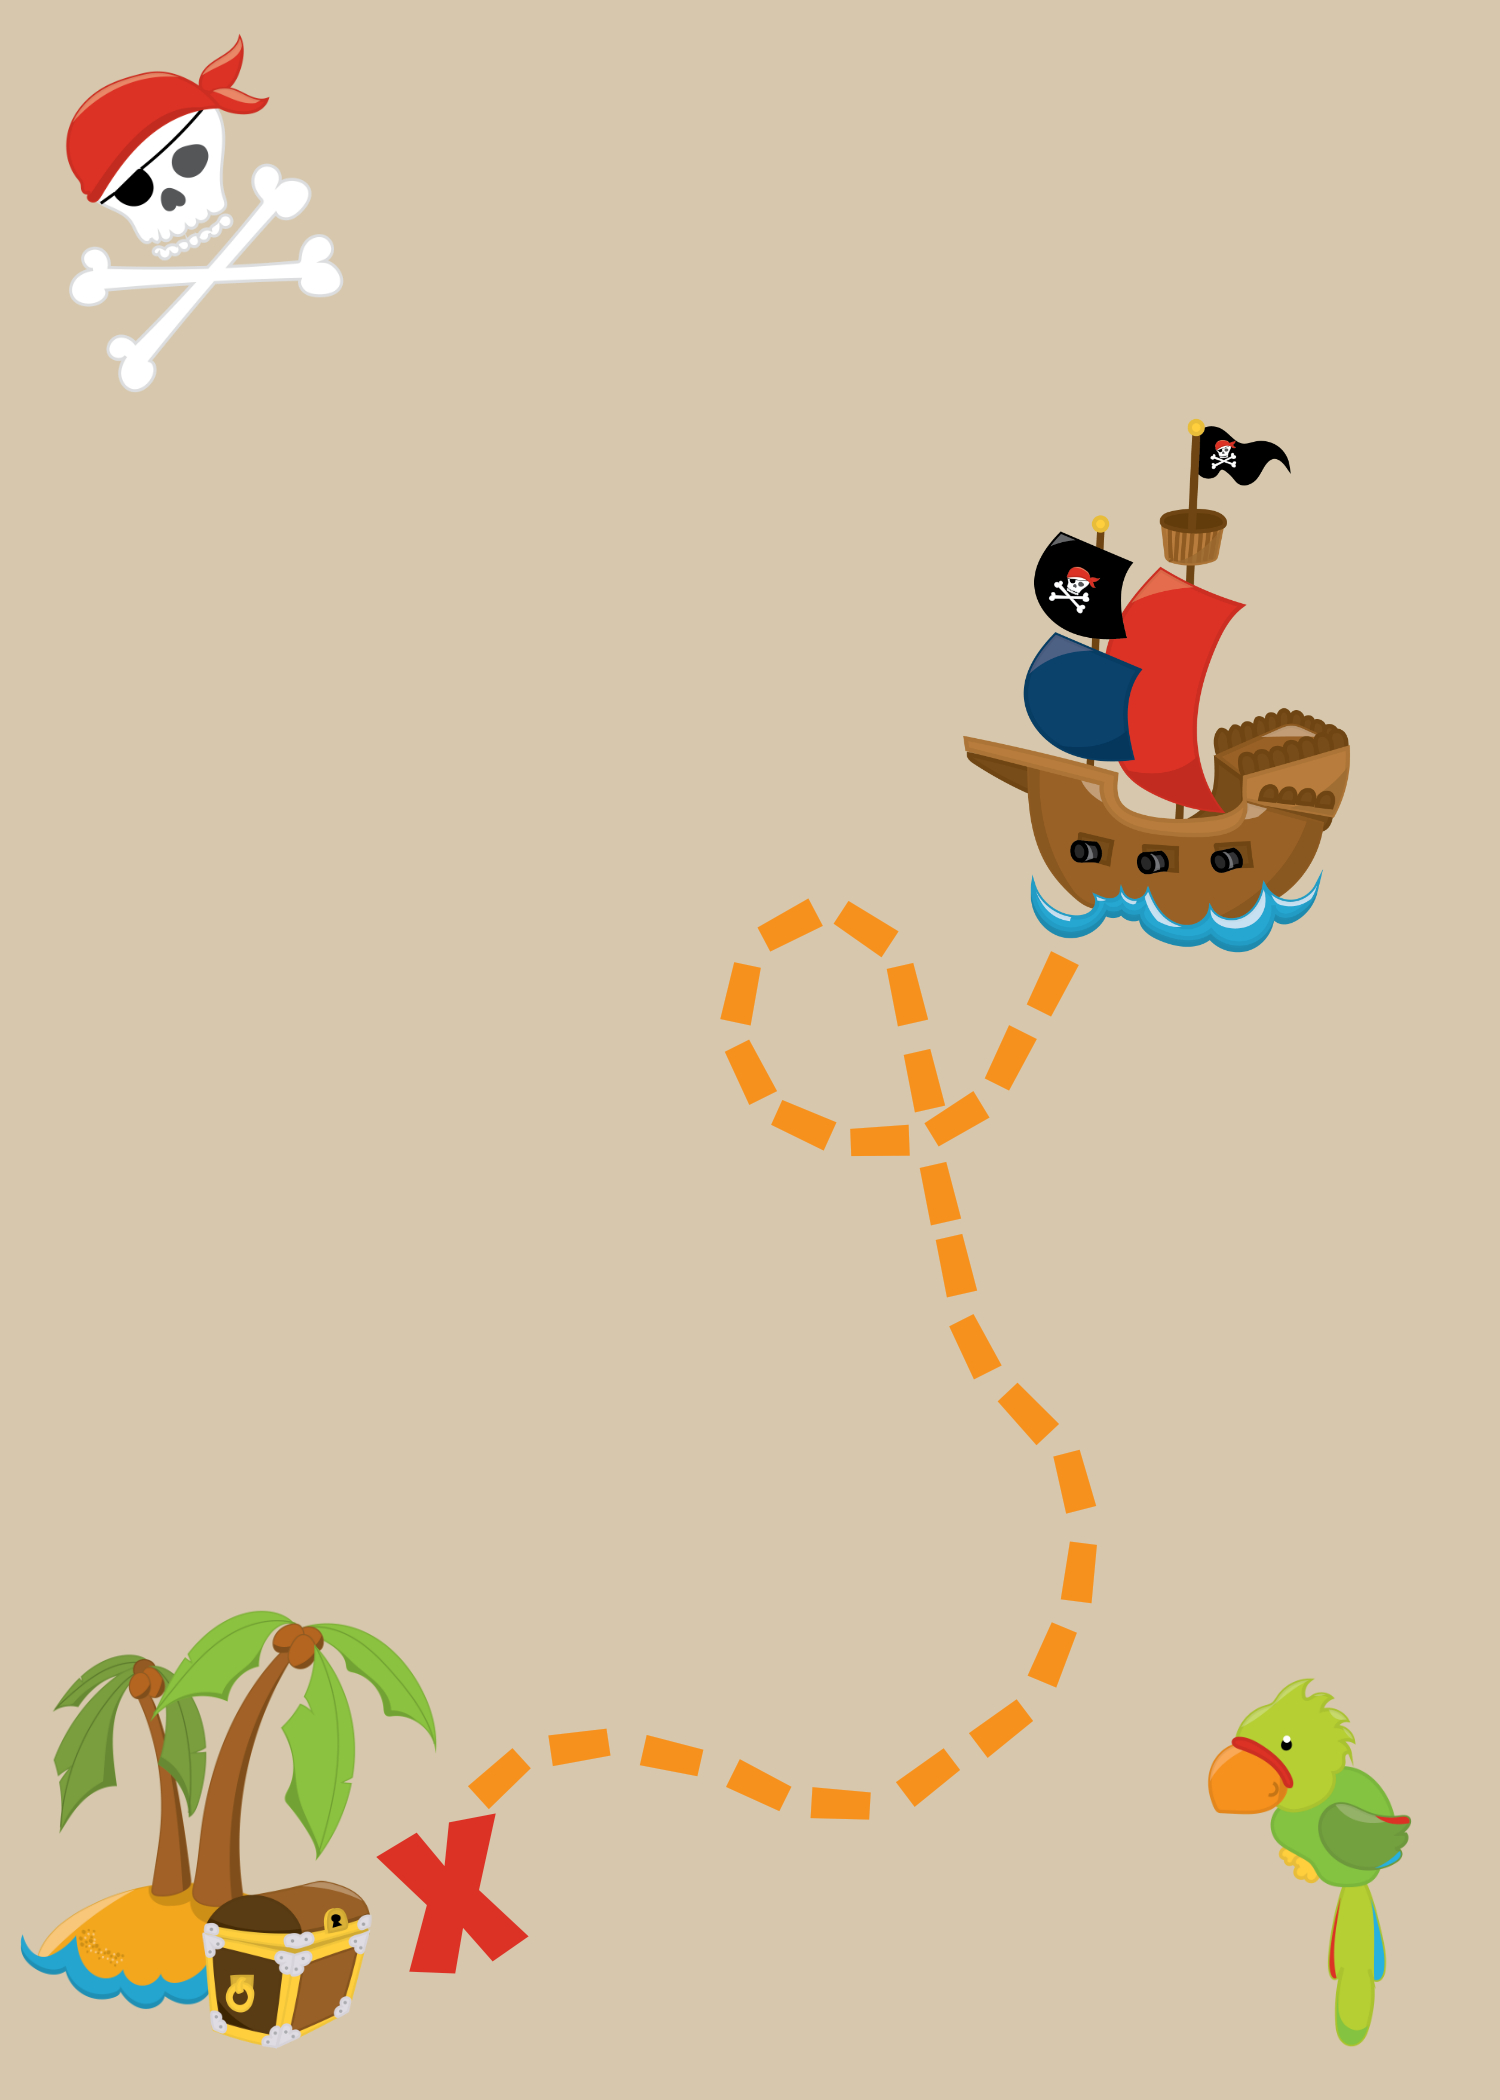 Pirate Party Ideas-Invitations, Food, Games And More - Free Pirate Birthday Party Printables